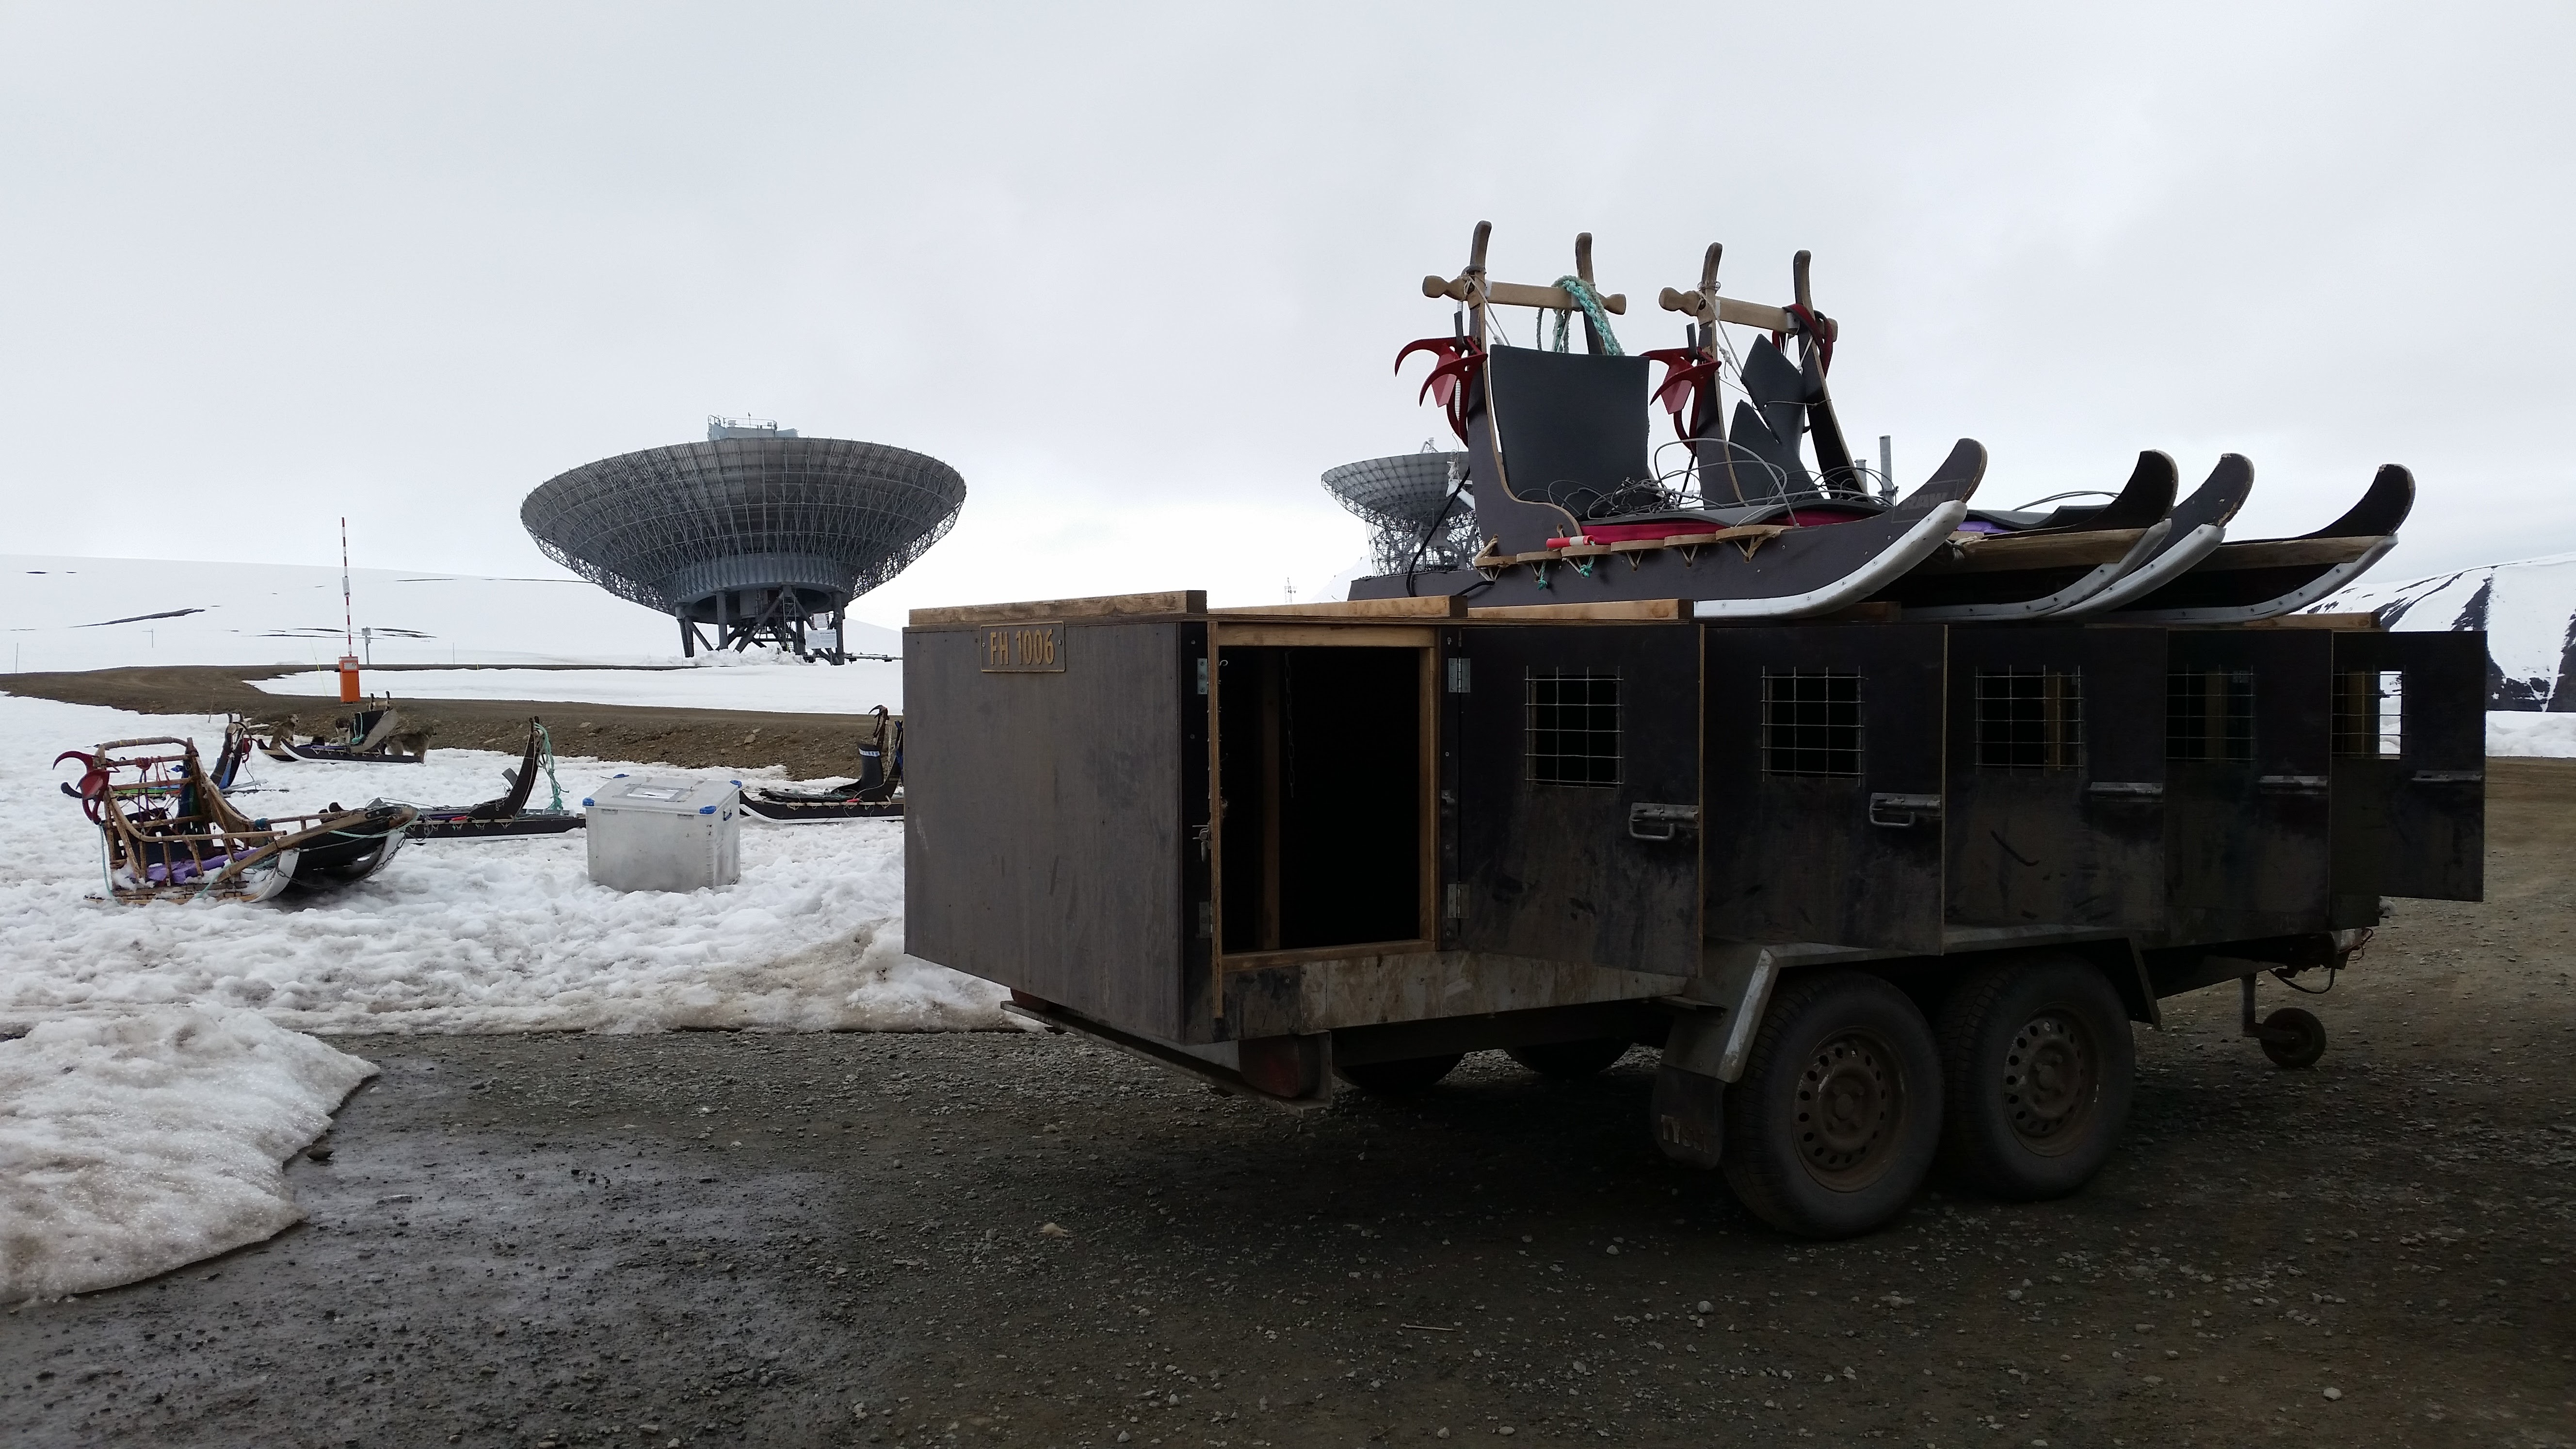 dog transport for sledding near Longyearbyen, Spitsbergen